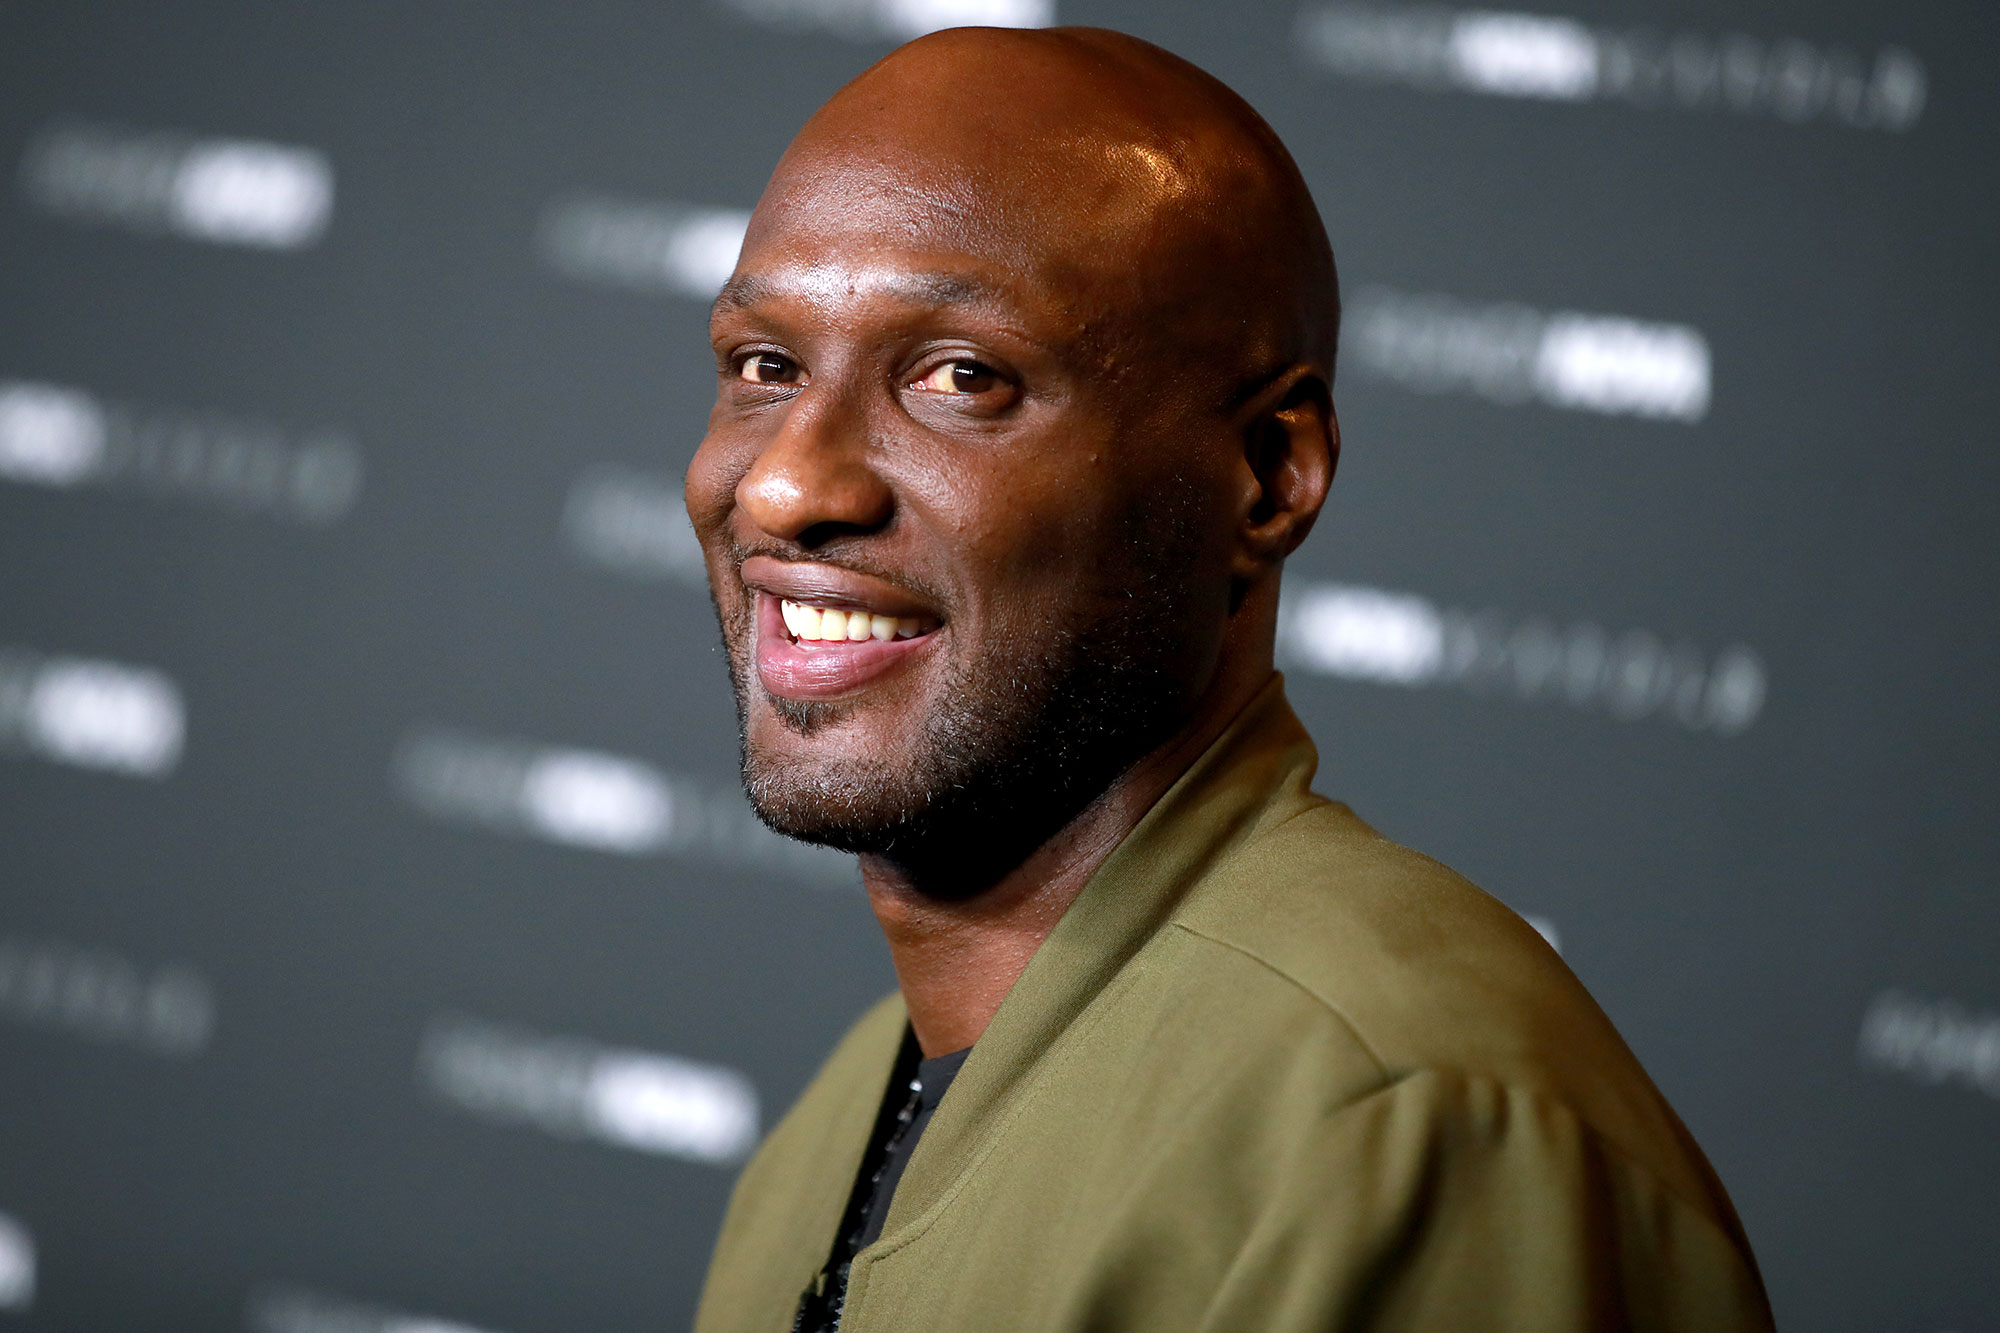 Kardashians Not Worried About Lamar Odom Book - Lamar Odom attends the Fashion Nova x Cardi B Collection Launch Party at Hollywood Palladium on May 08, 2019 in Los Angeles, California.